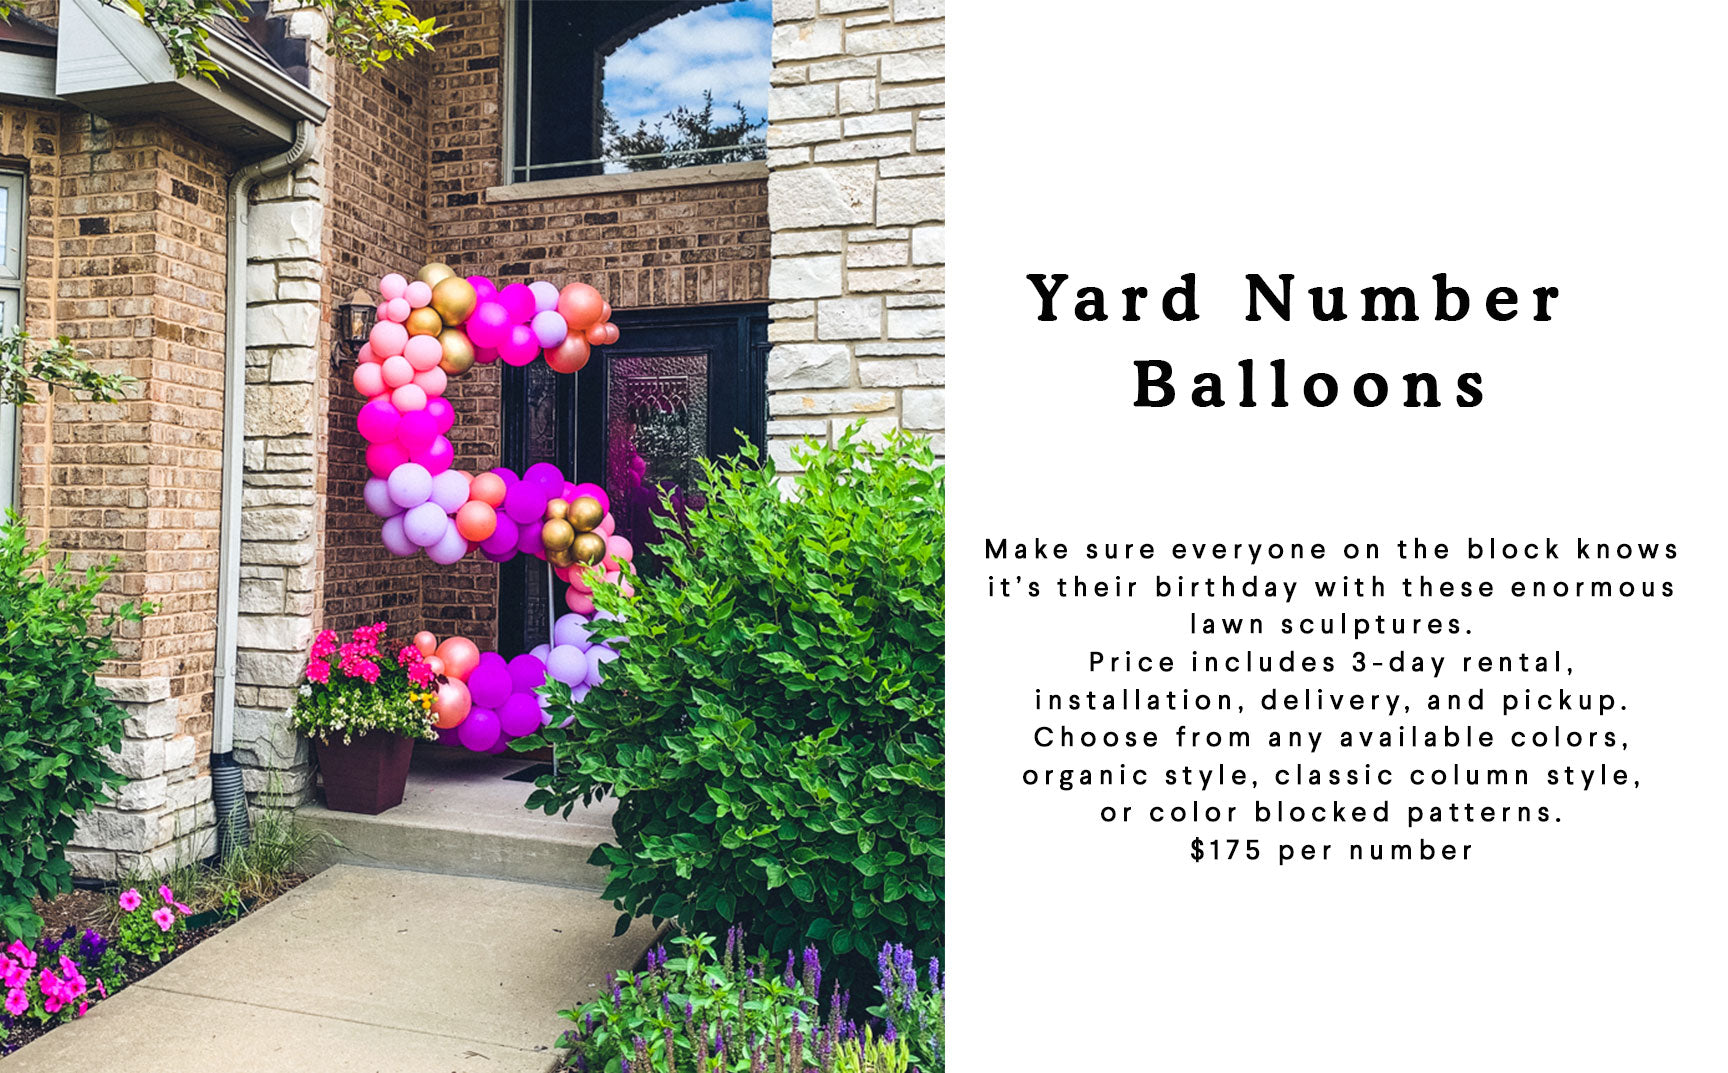 lawn number balloons